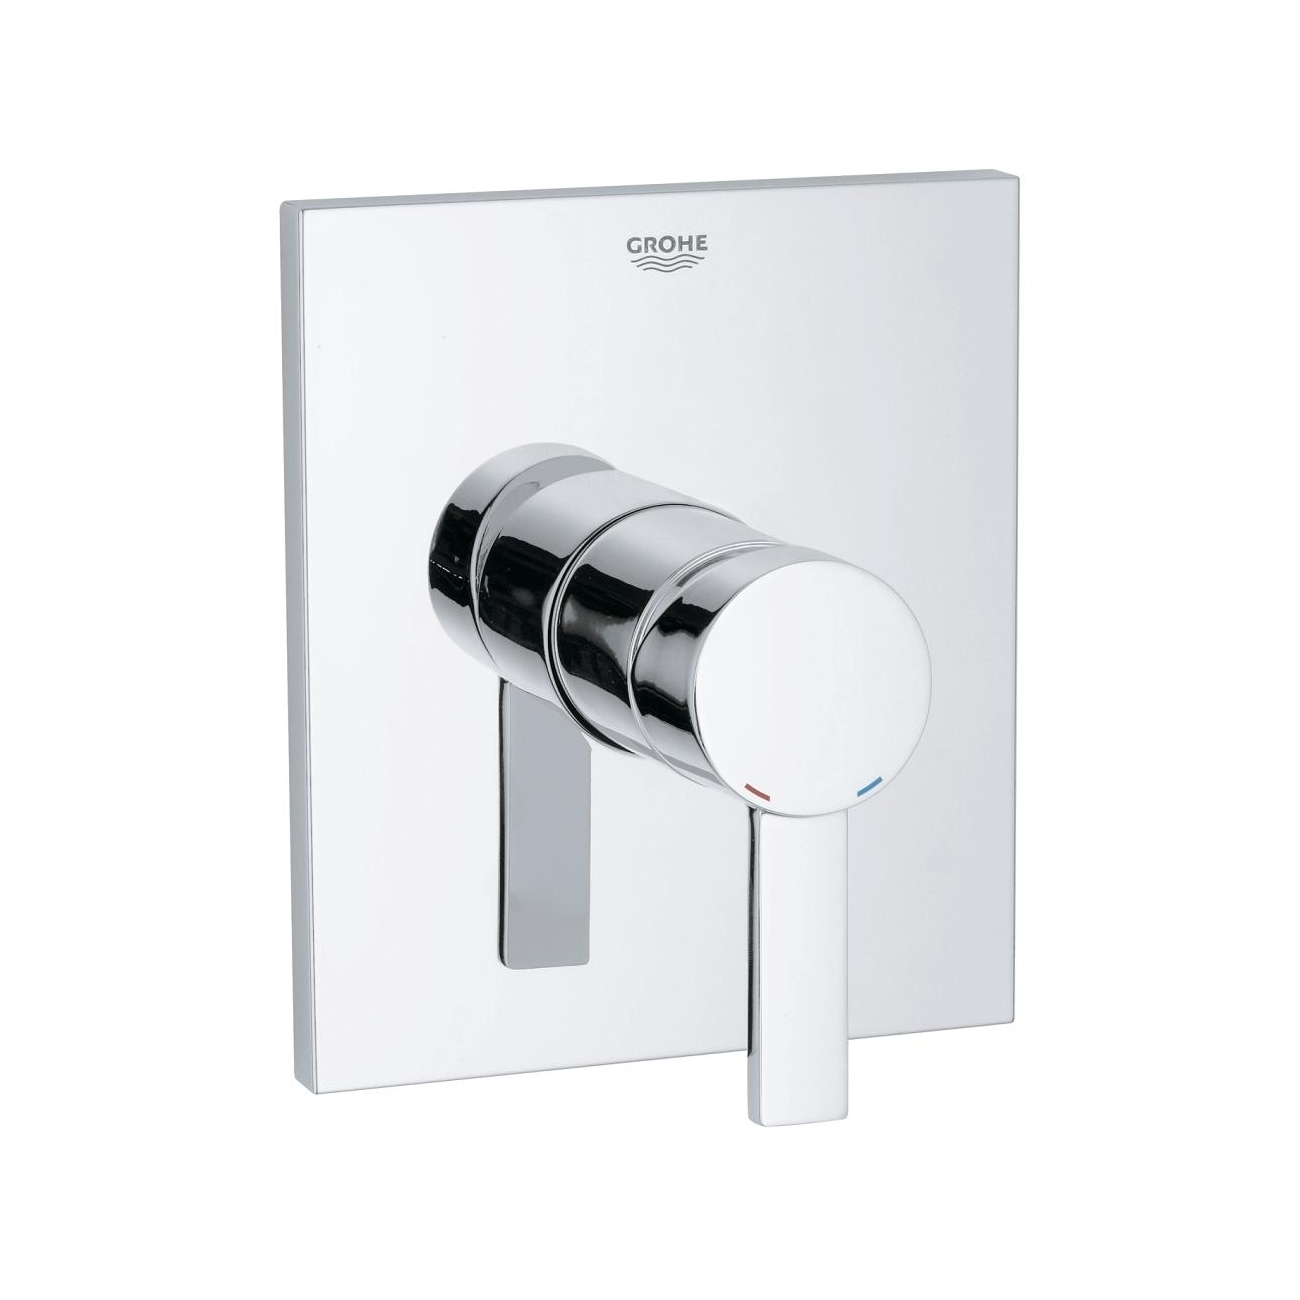 GROHE ALLURE Single-lever shower mixer